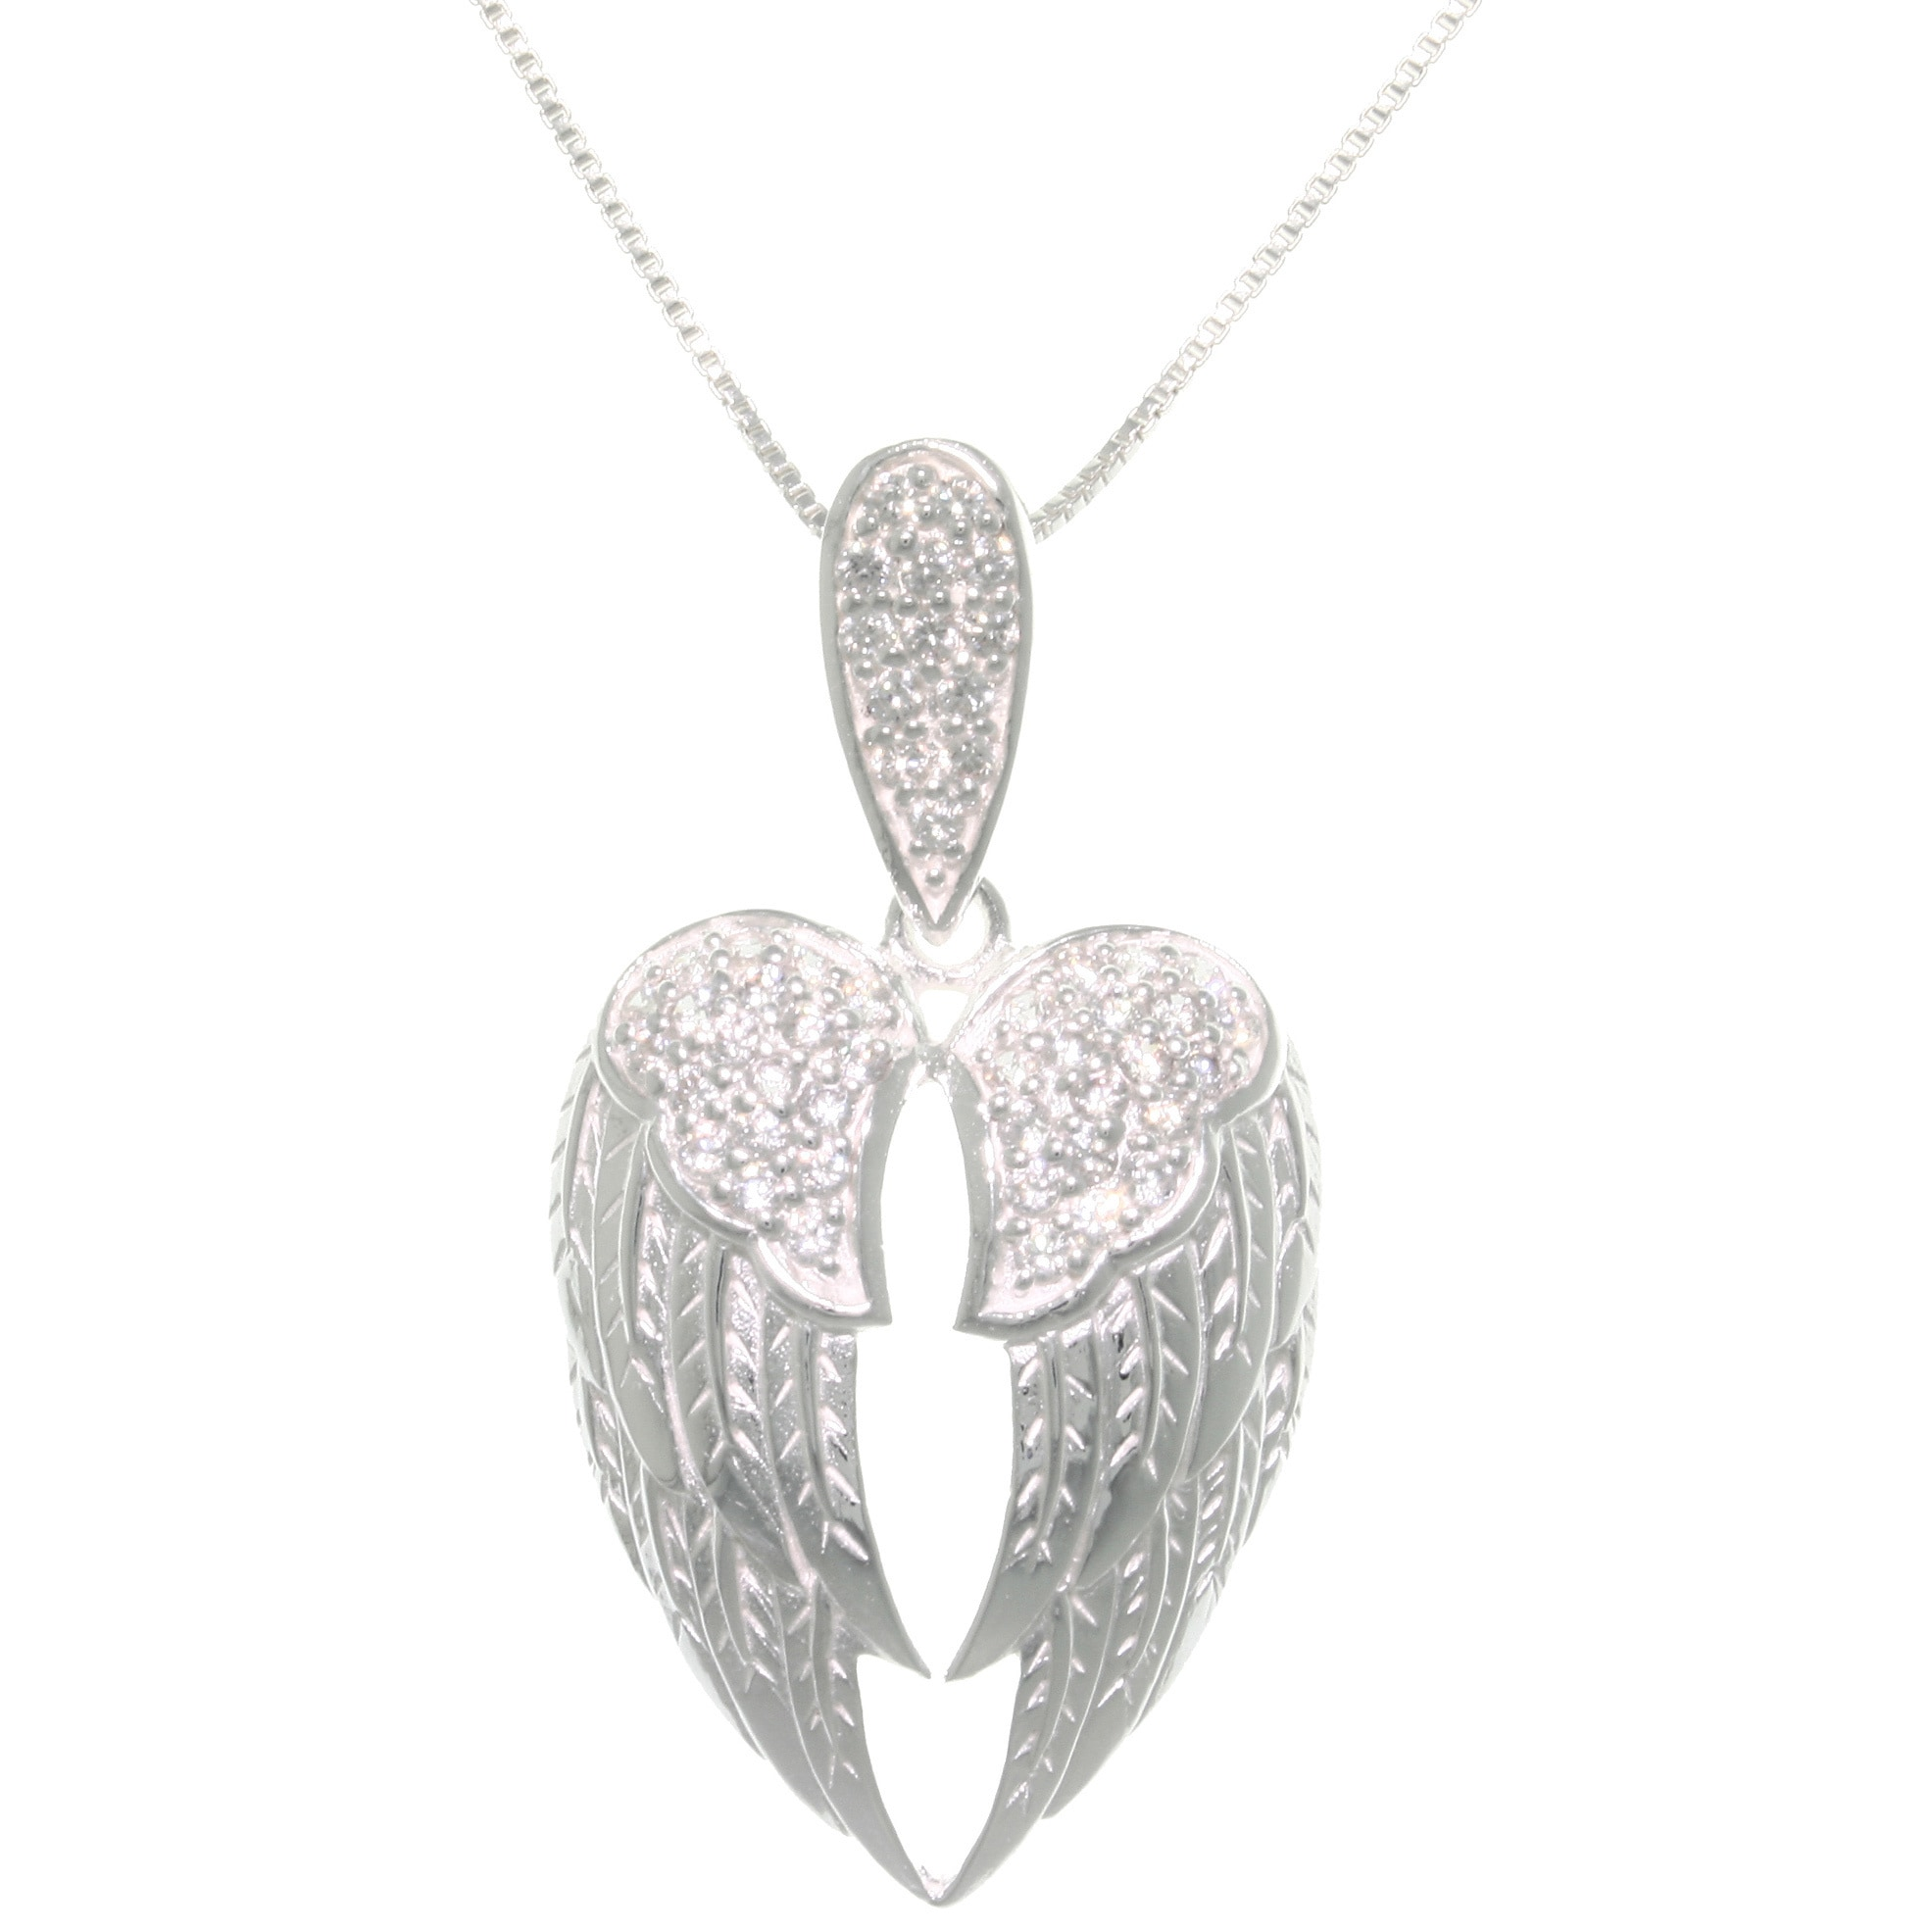 chain a pendant wings celtic perfect angel as with love silver products sharpened beautiful heart jewelry sterling